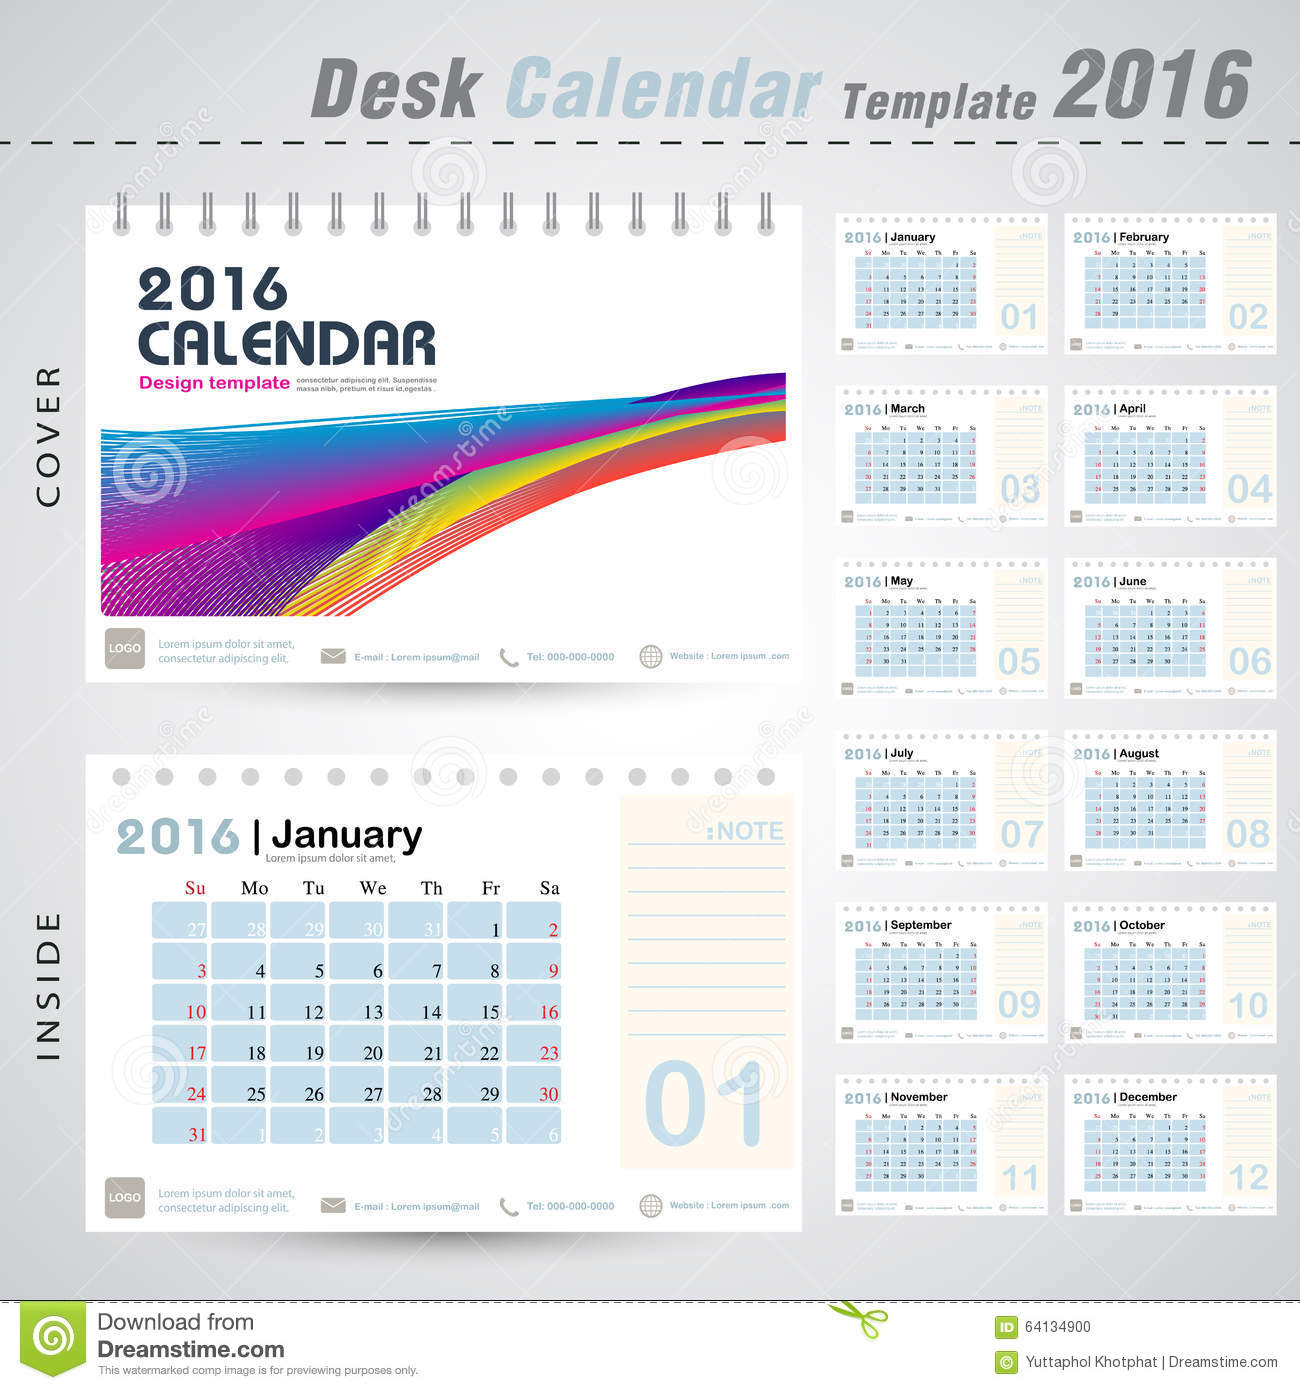 Desk Calendar 2016 Modern Design Template For New Yearoffice